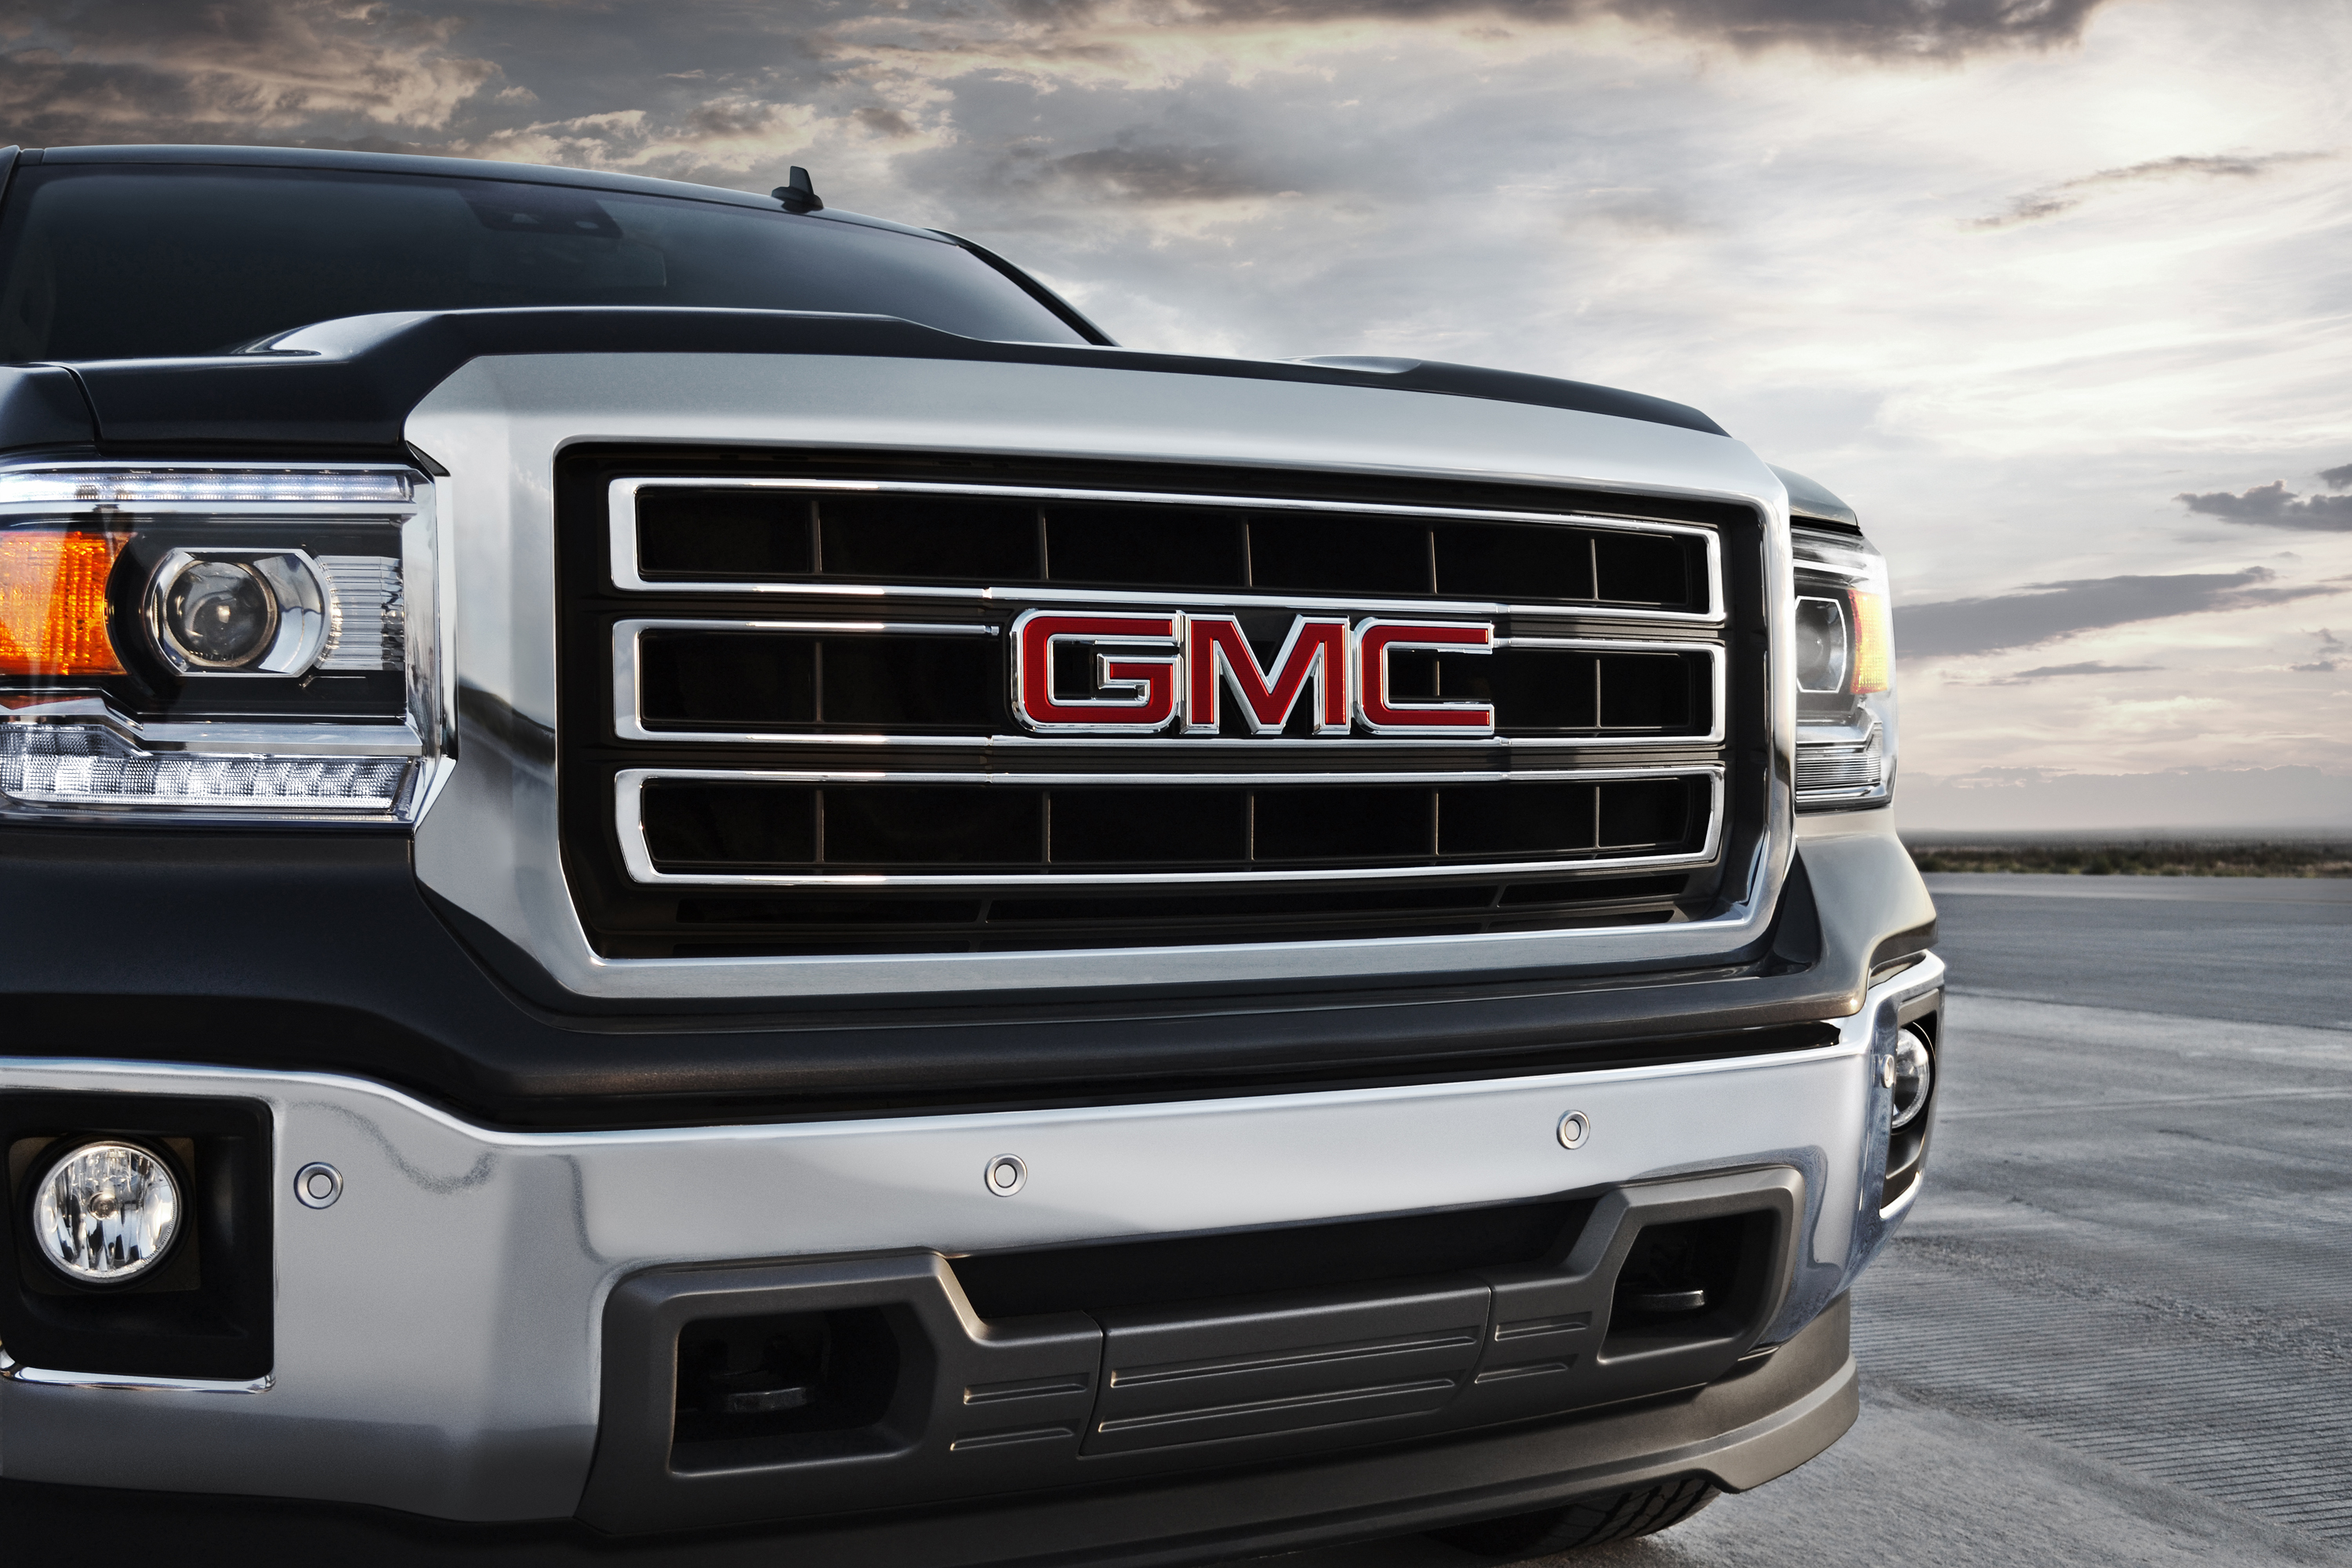 gmc wikimedia mias sierra commons wiki file hd denali